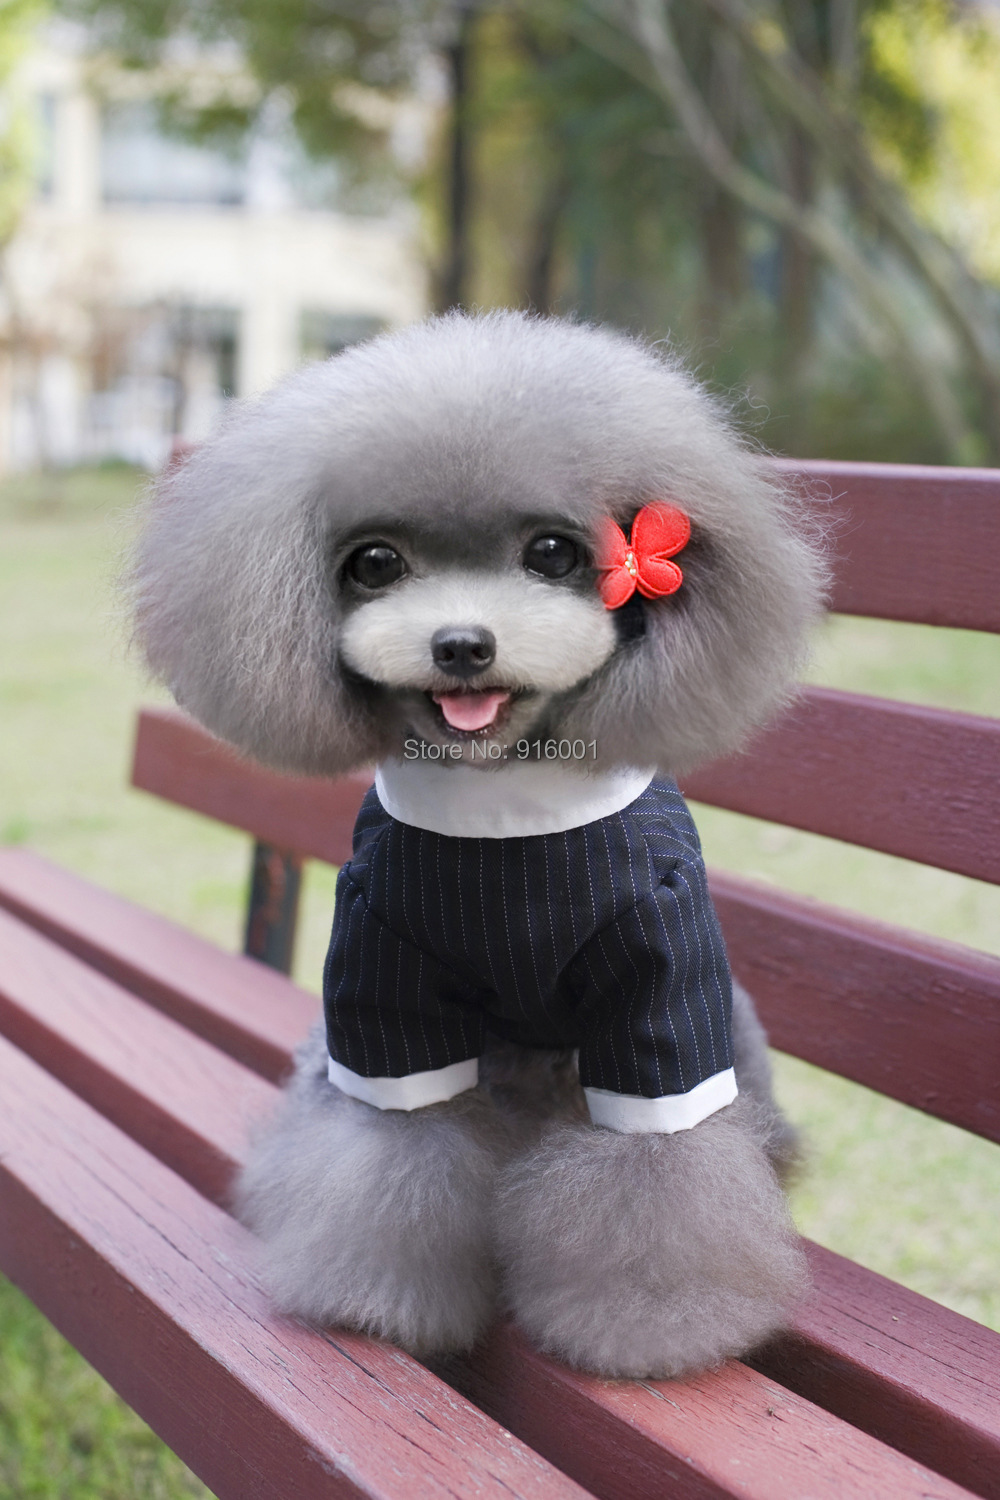 Newest Dog Clothes! FREE SHIPPING Male Dog Tuxedo for Wedding with ...